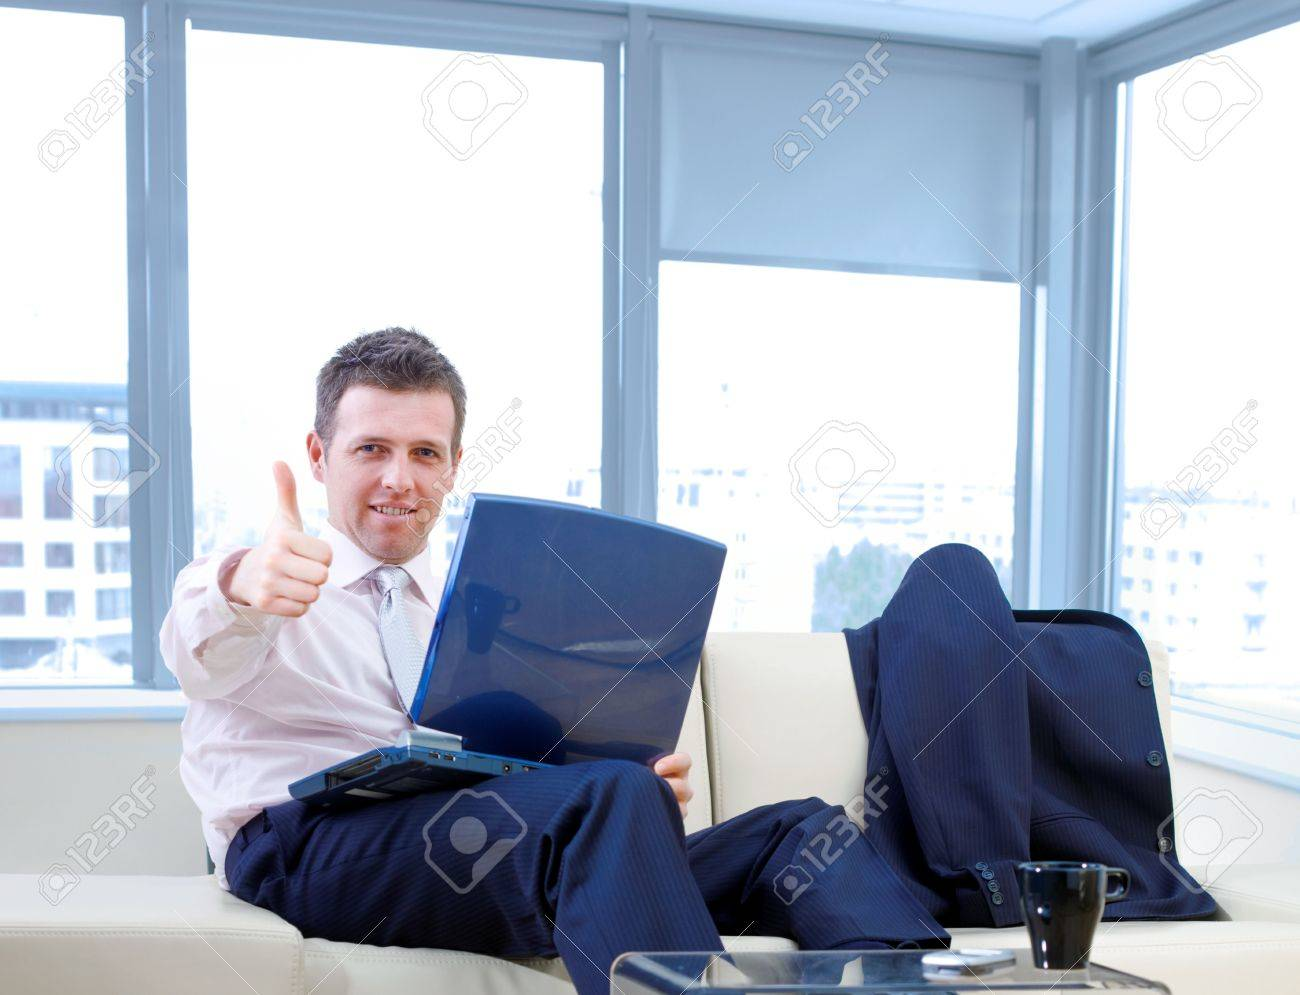 Happy successful businessman sitting on couch at office, working on laptop compute, smiling and showing okay hand sign. Stock Photo - 3916138